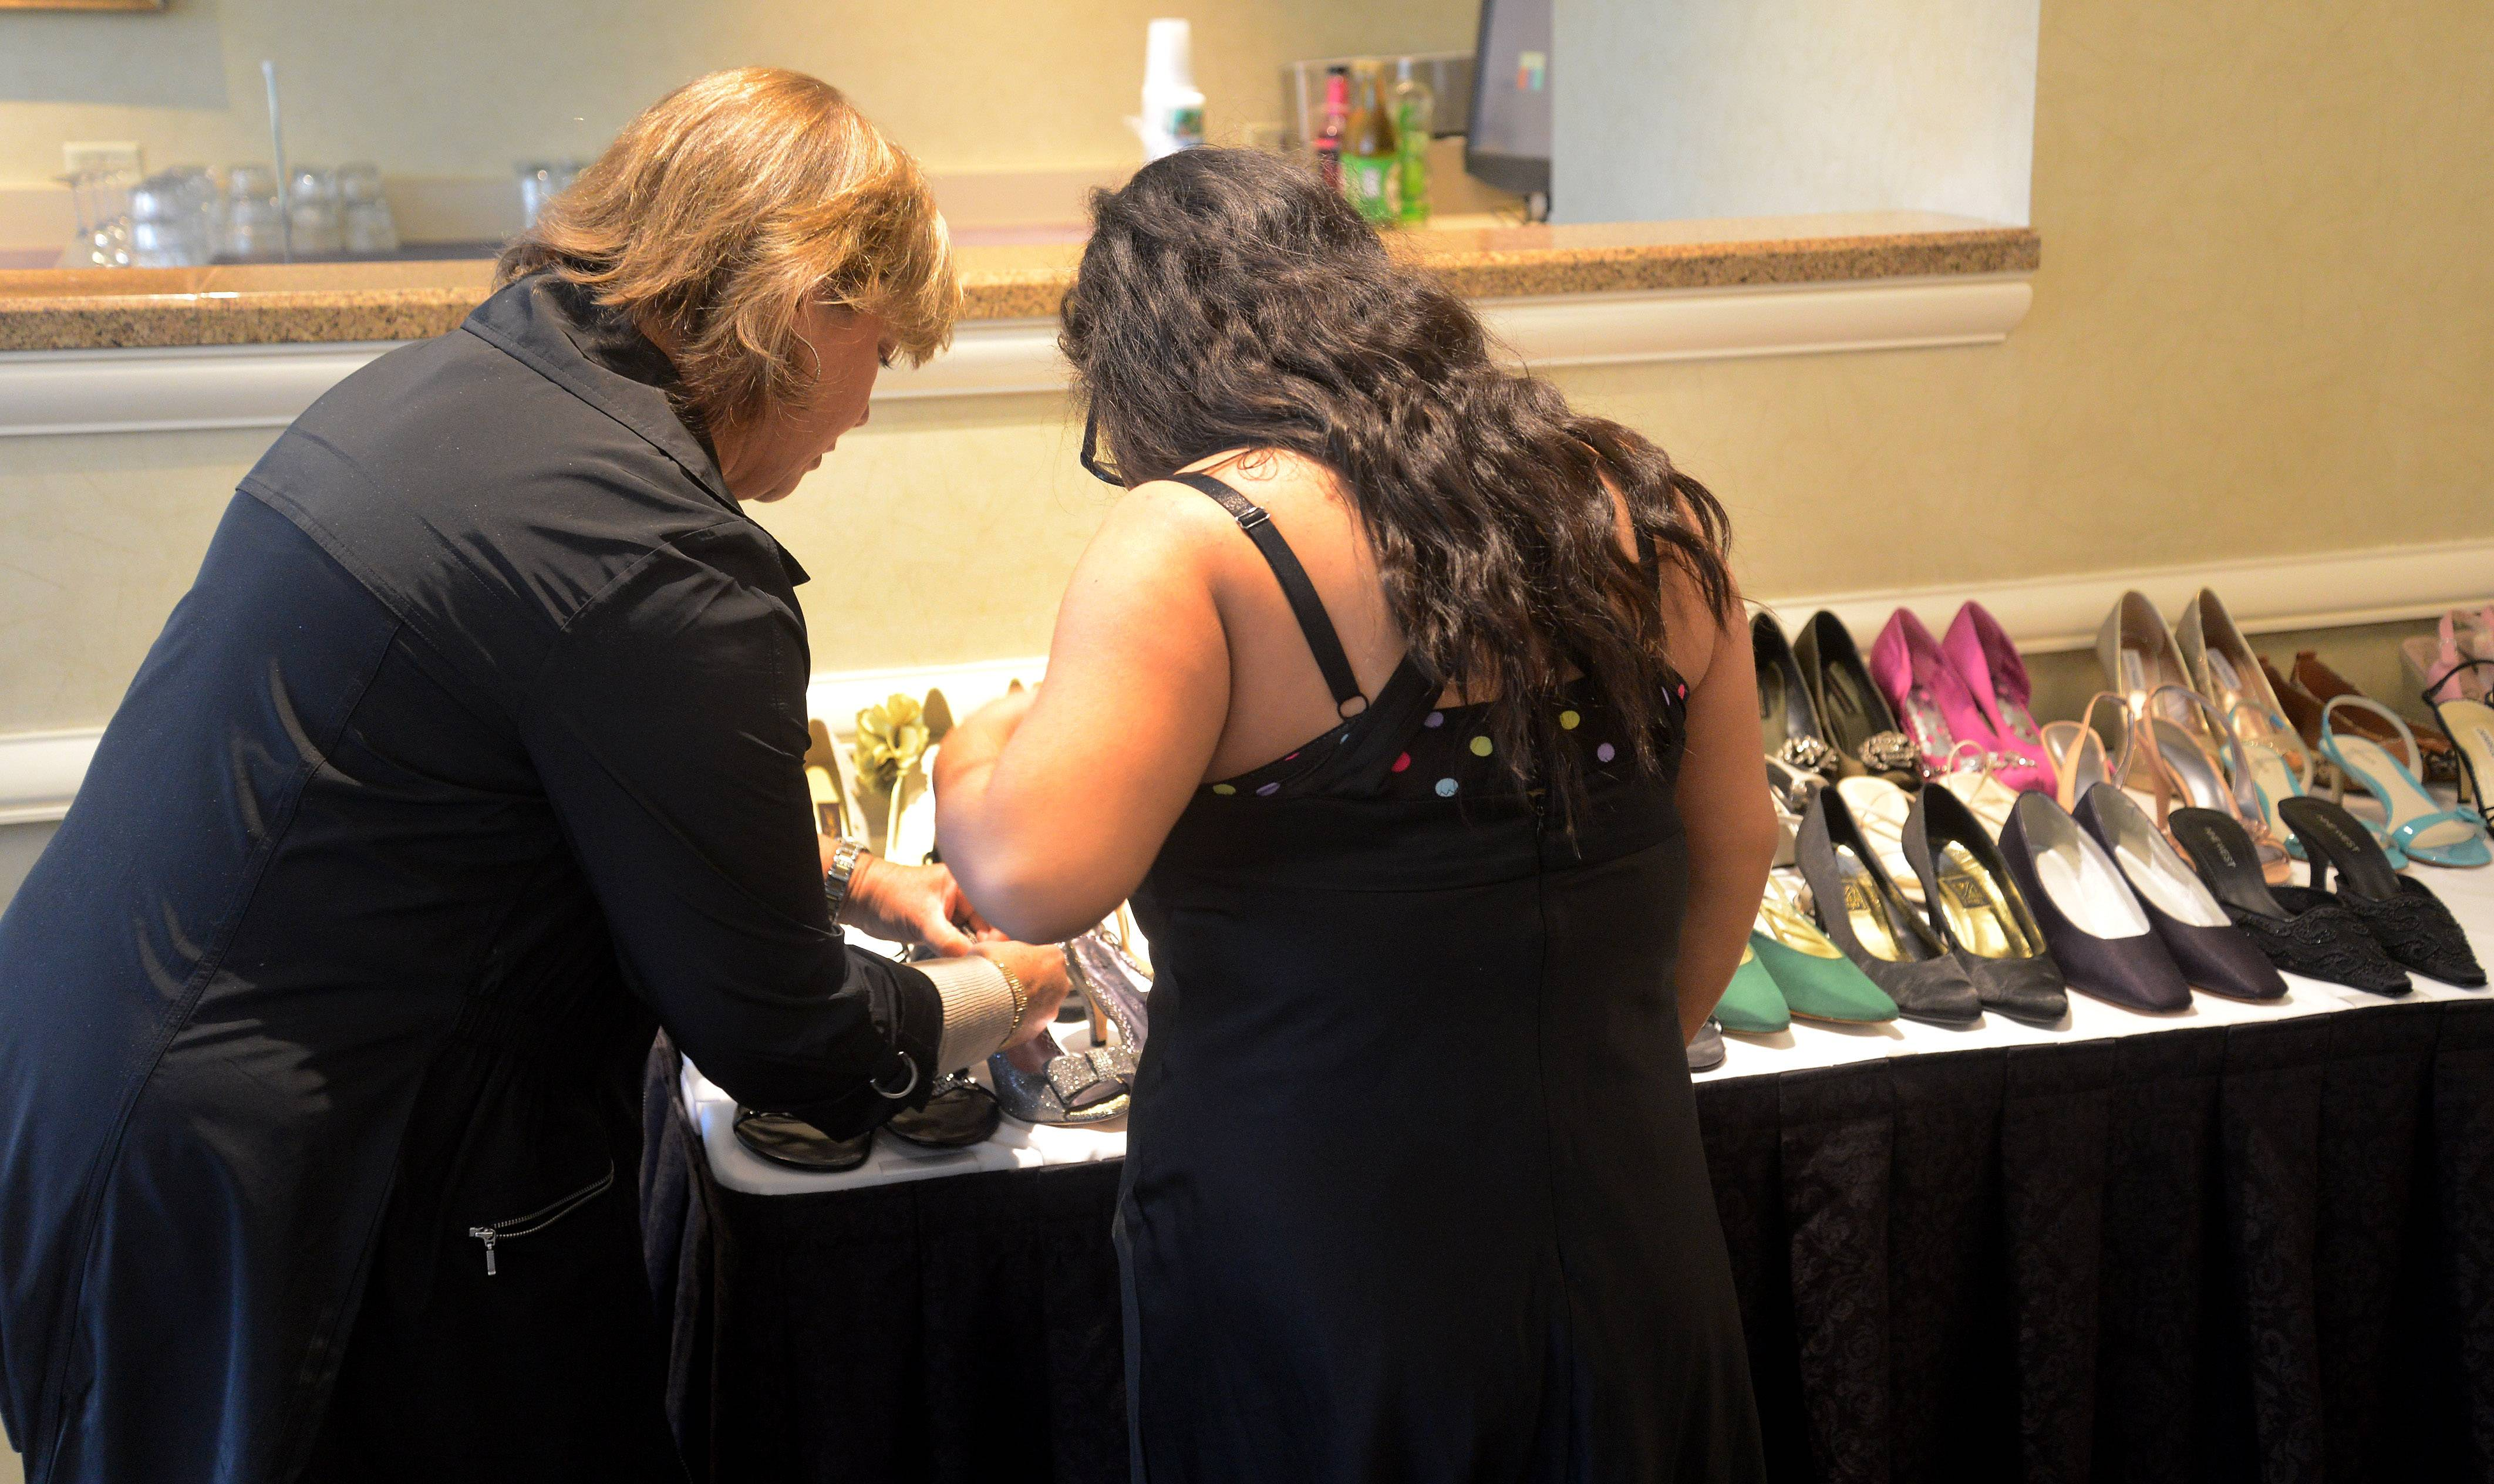 A volunteer helps a student pick out shoes.